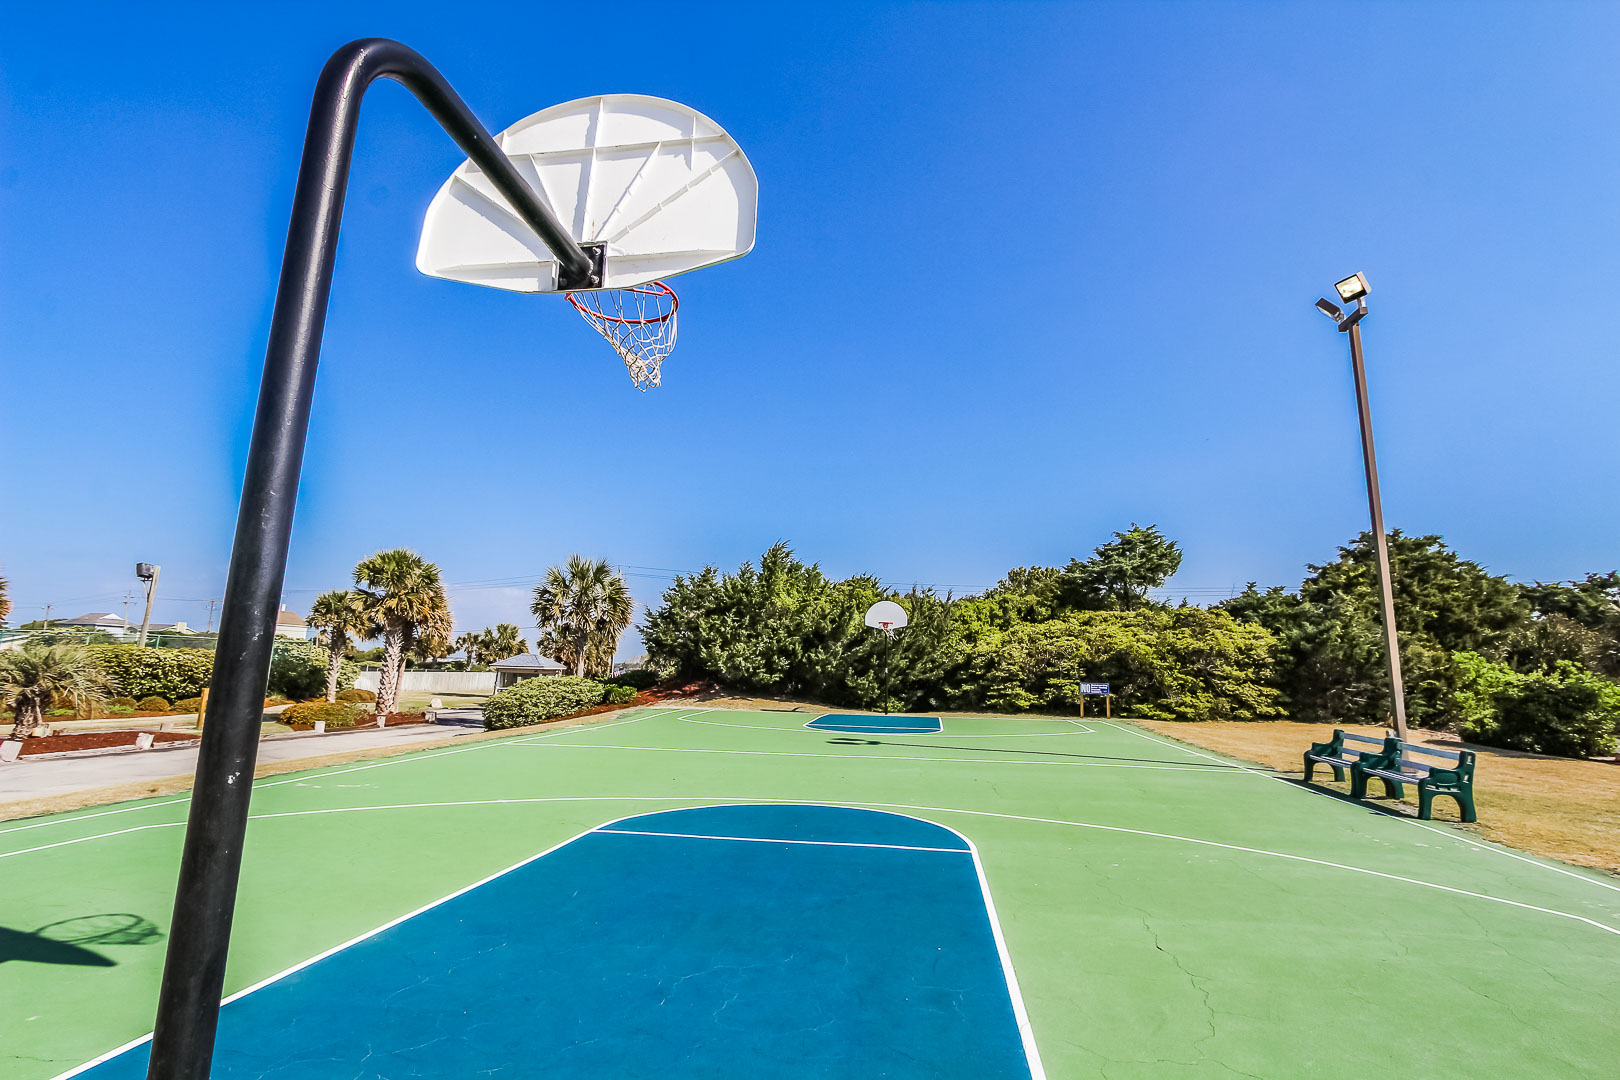 A rejuvenating basketball court at VRI's A Place at the Beach III in North Carolina